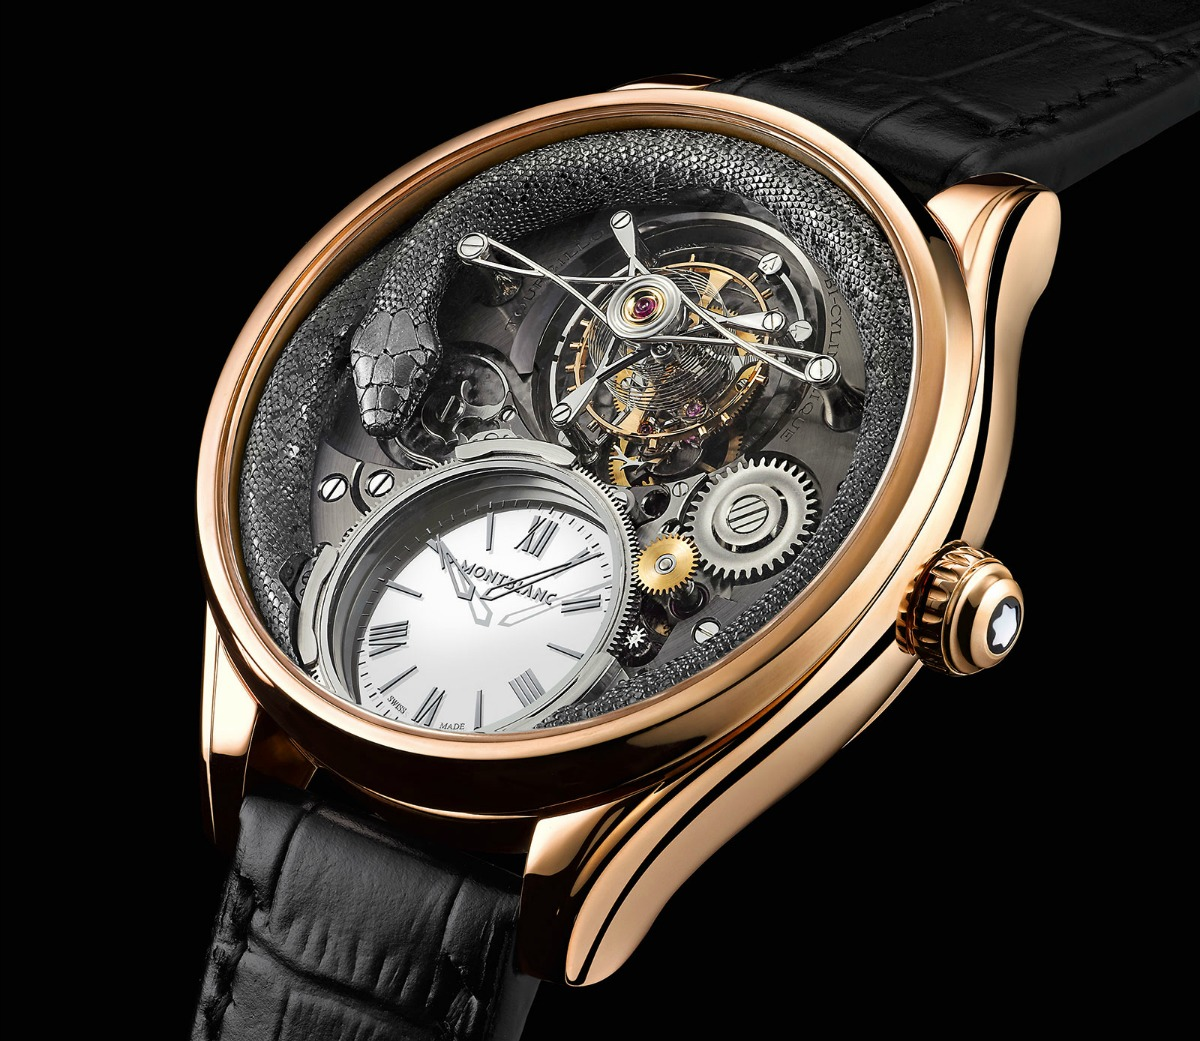 montblanc-tourbillon-bi-cylindrique-110-years-anniversary-limited-edition-3